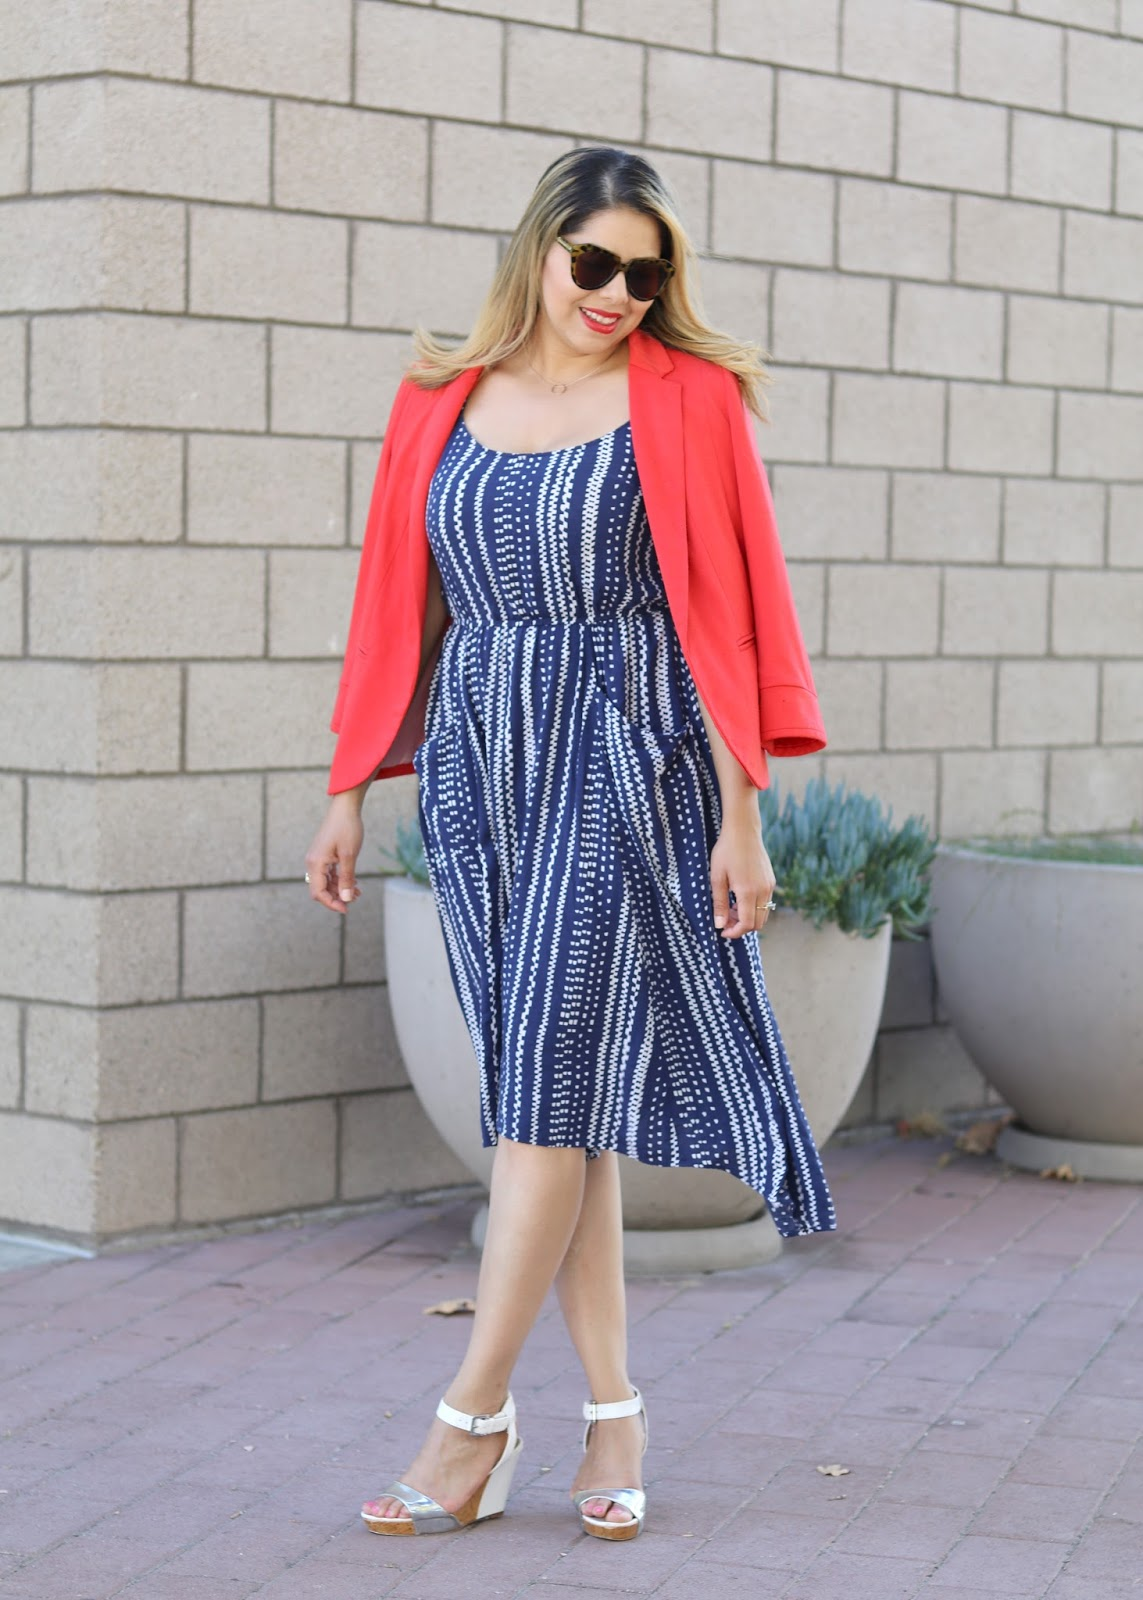 fourth of july look, casual red and blue outfit, fourth of july bbq outfit